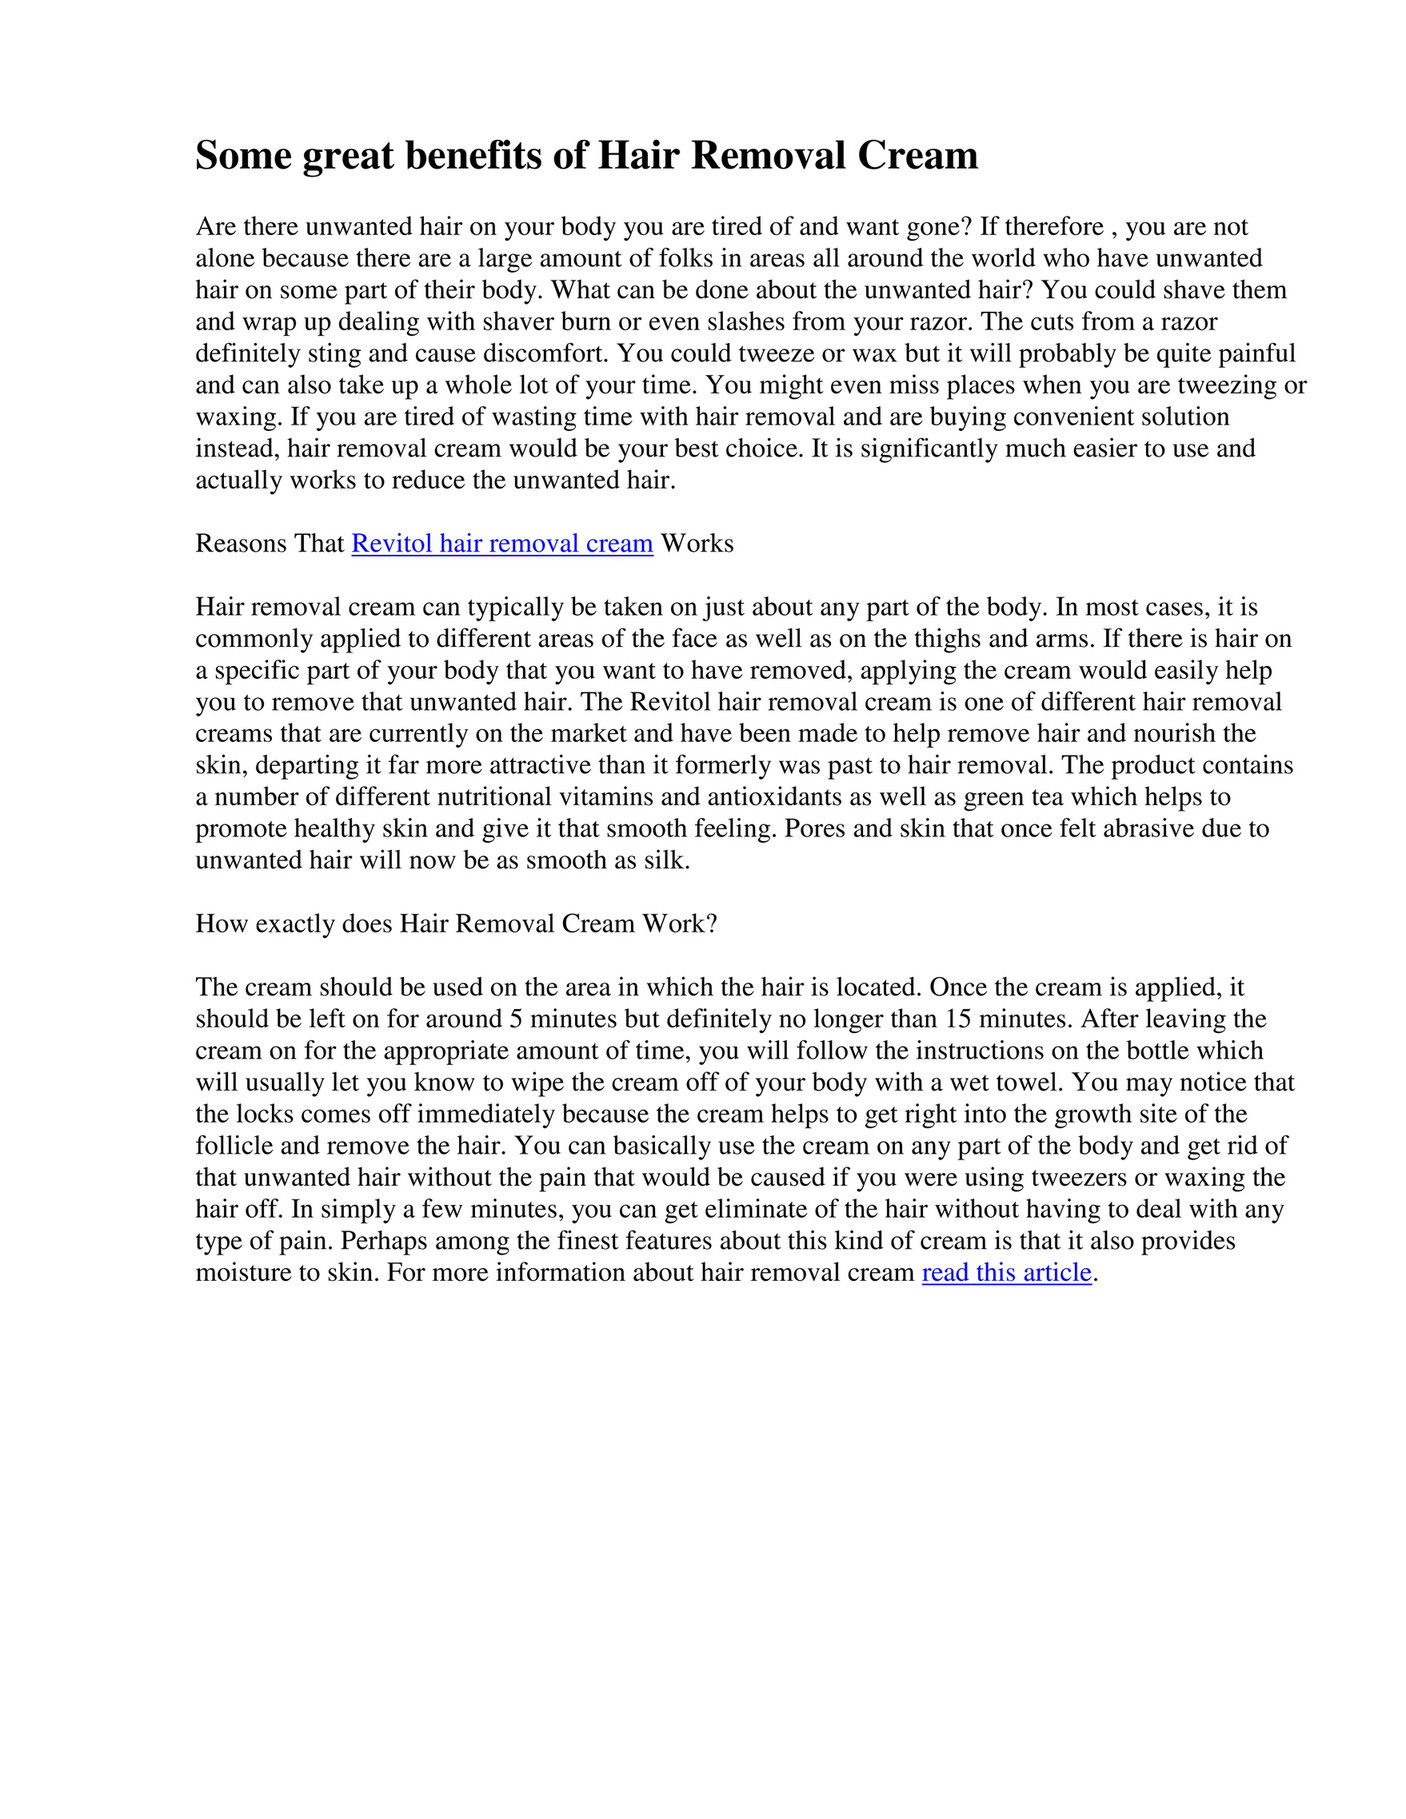 My Publications Revitol Hair Removal Cream Page 1 Created